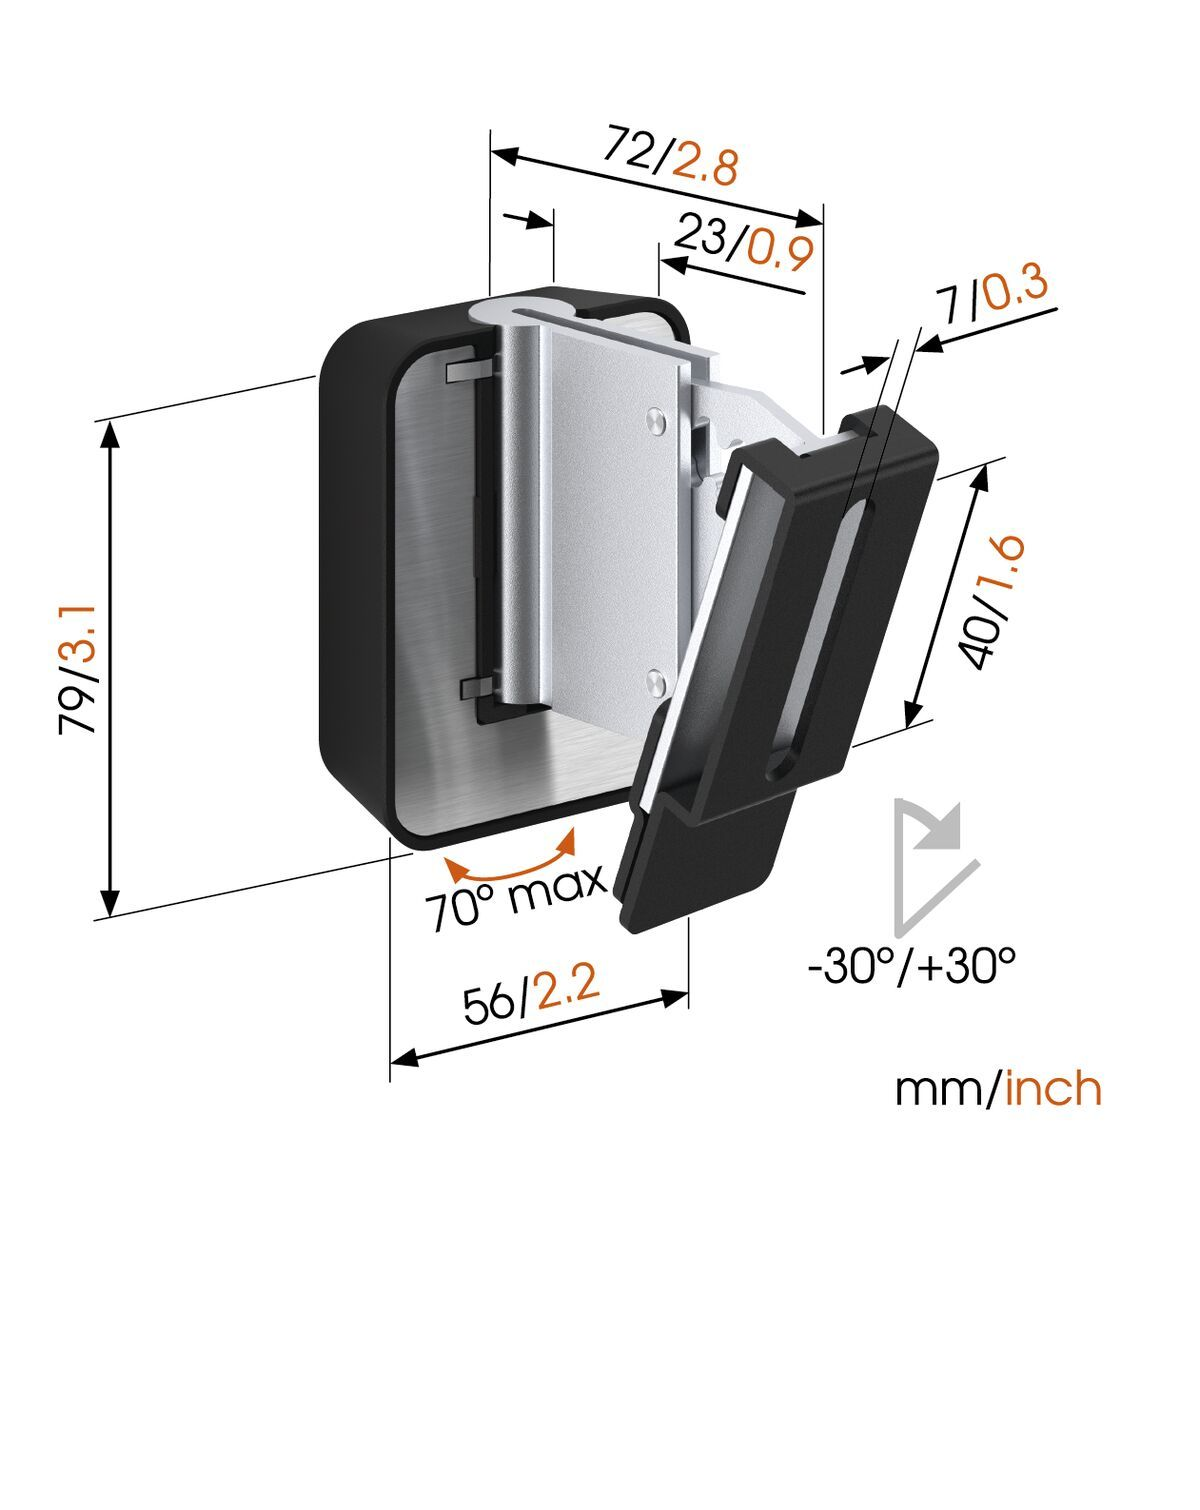 Vogel's SOUND 3200 Speaker Wall Mount (white) - Ideally suited for: Universal - Max. weight load: 5 kg - Dimensions